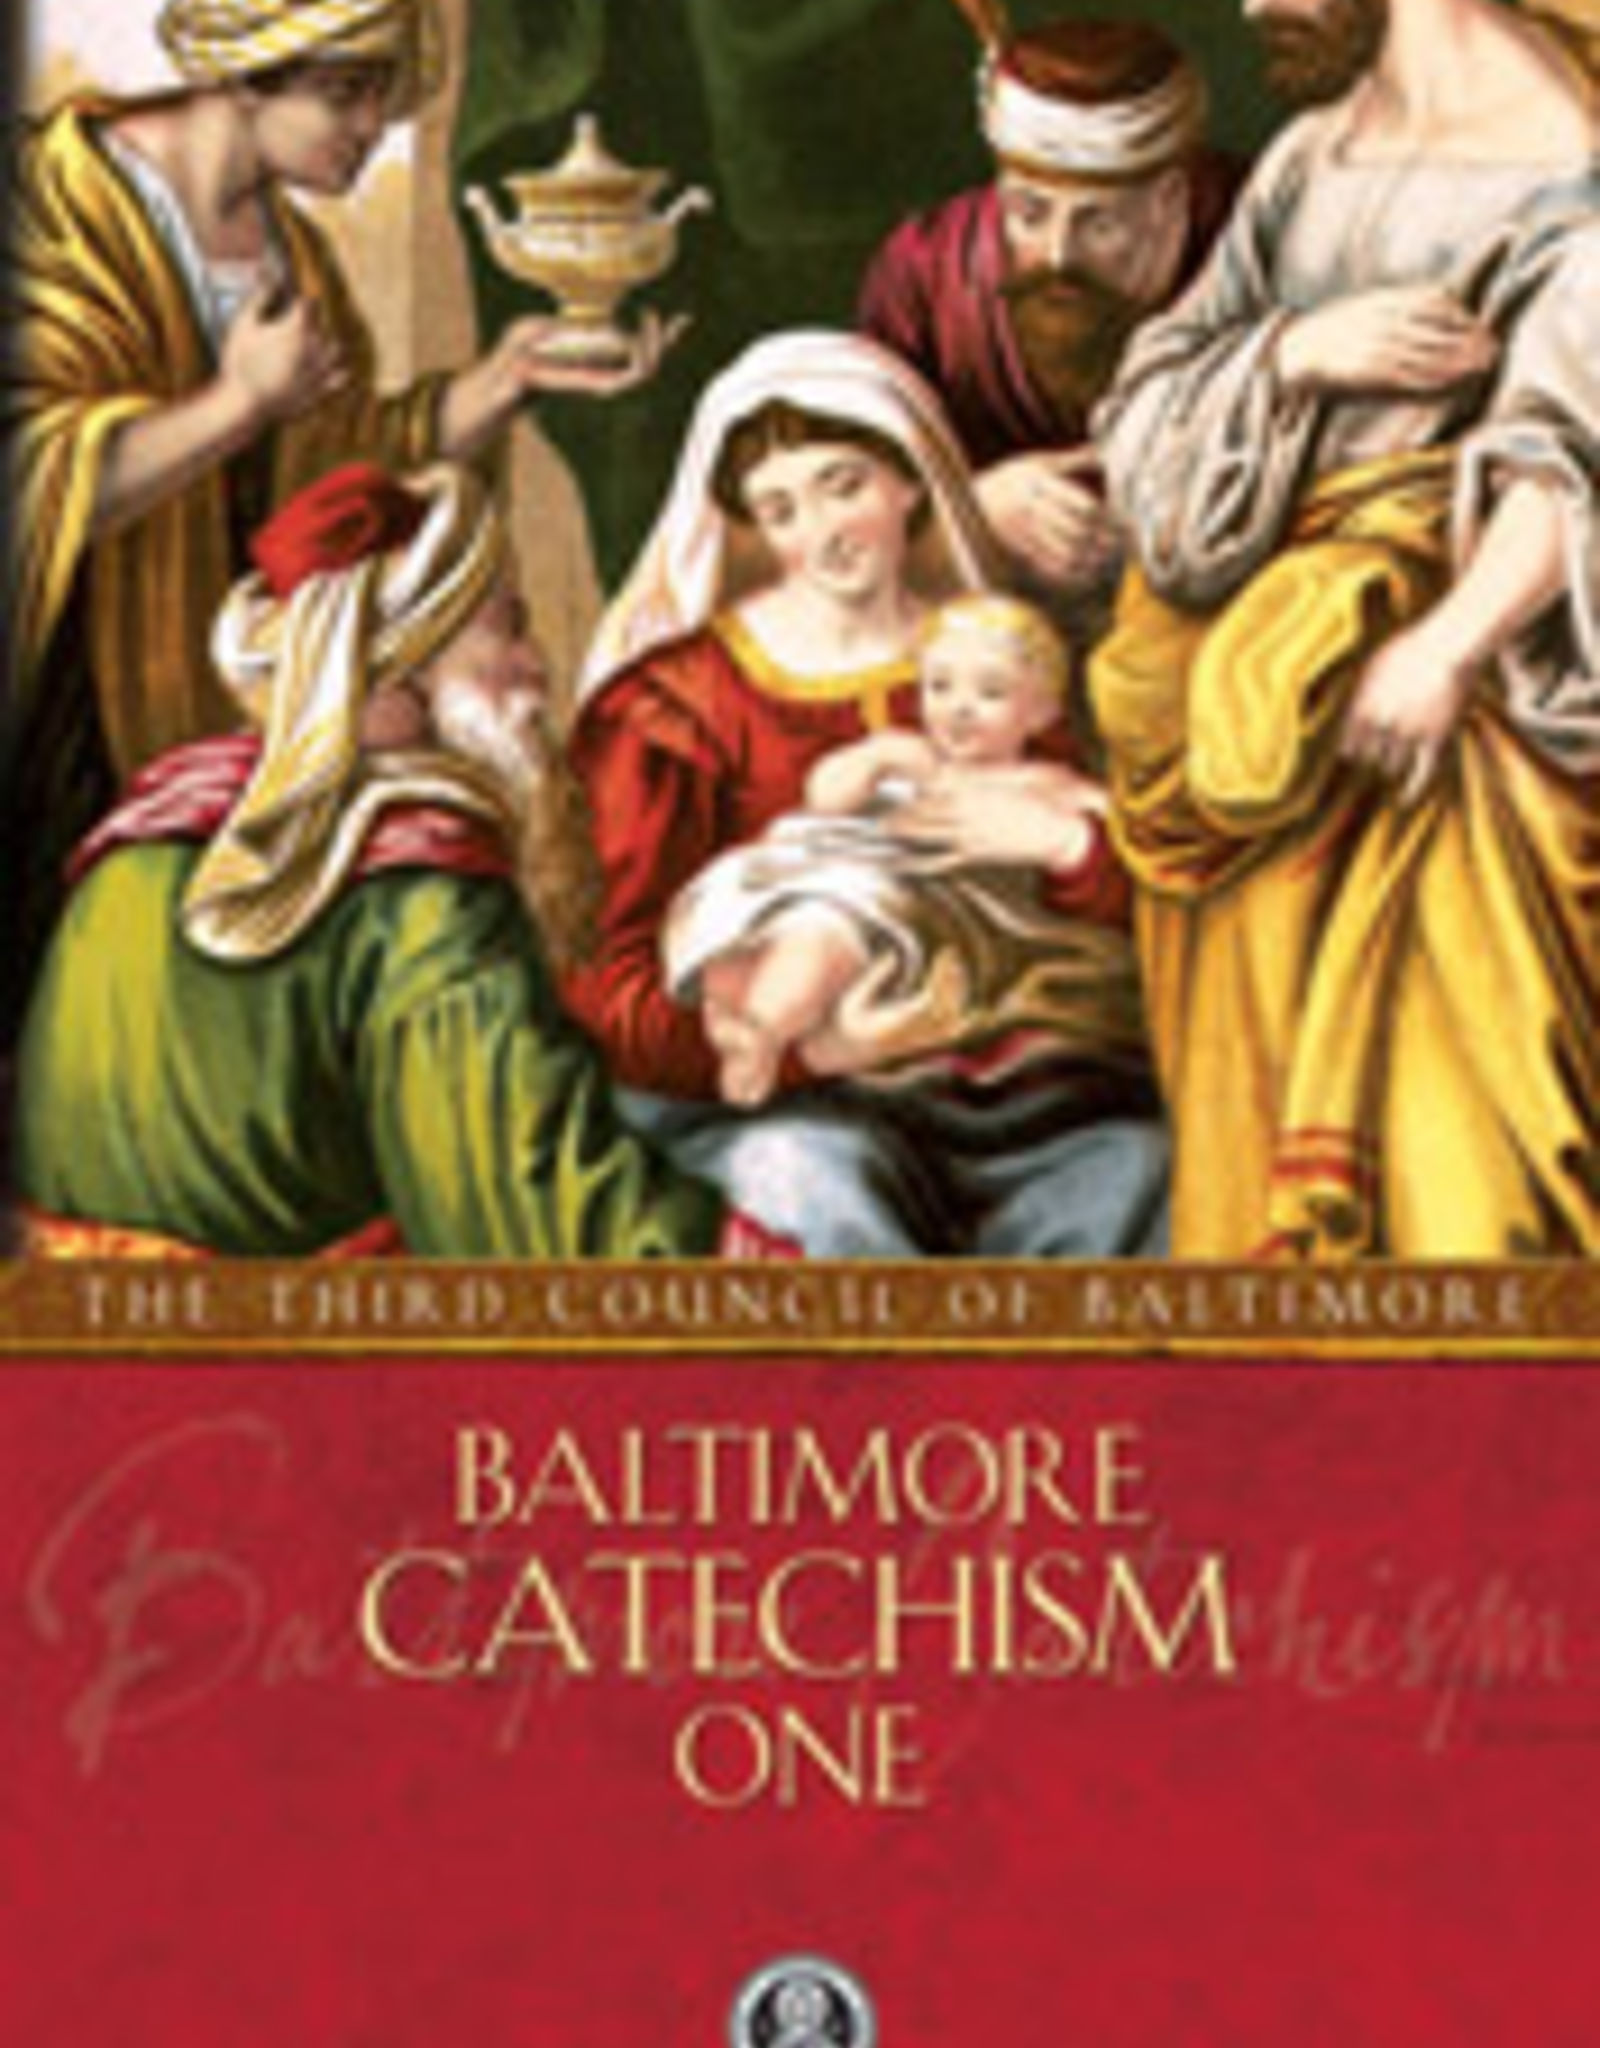 Tan Books Baltimore Catechism 1, by The Third Council of Baltimore (paperback)